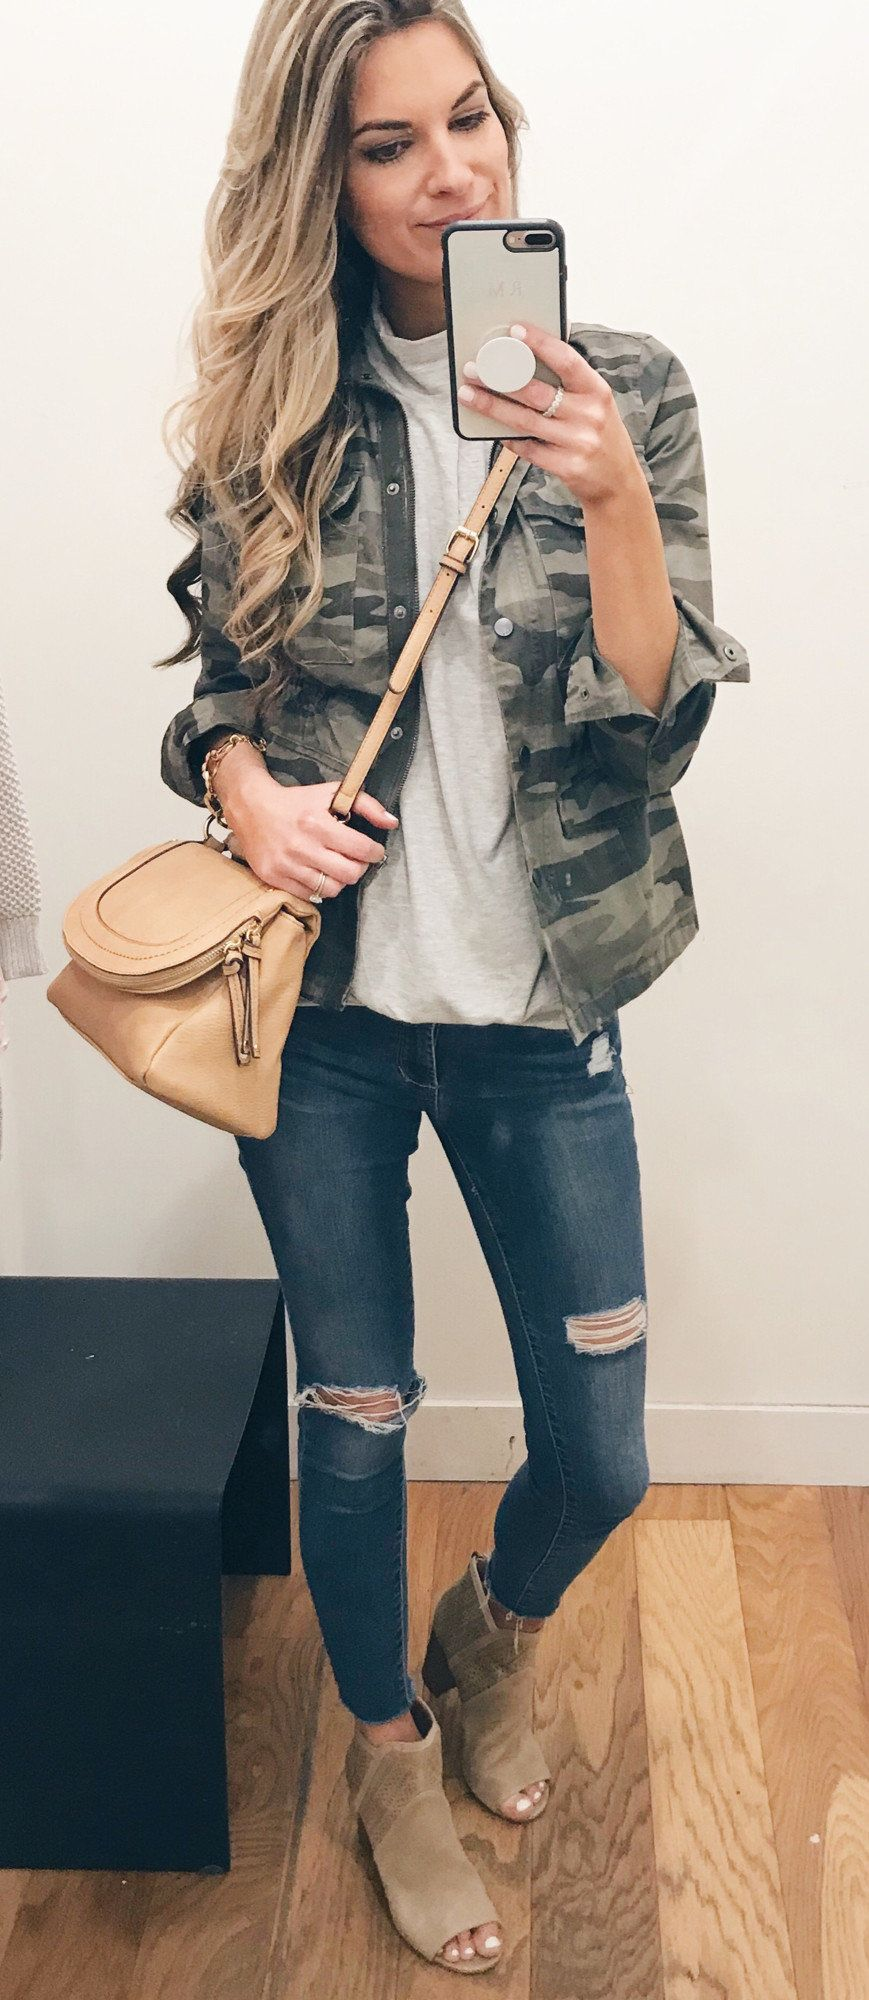 green and gray camouflage zip-up jacket #spring #outfits